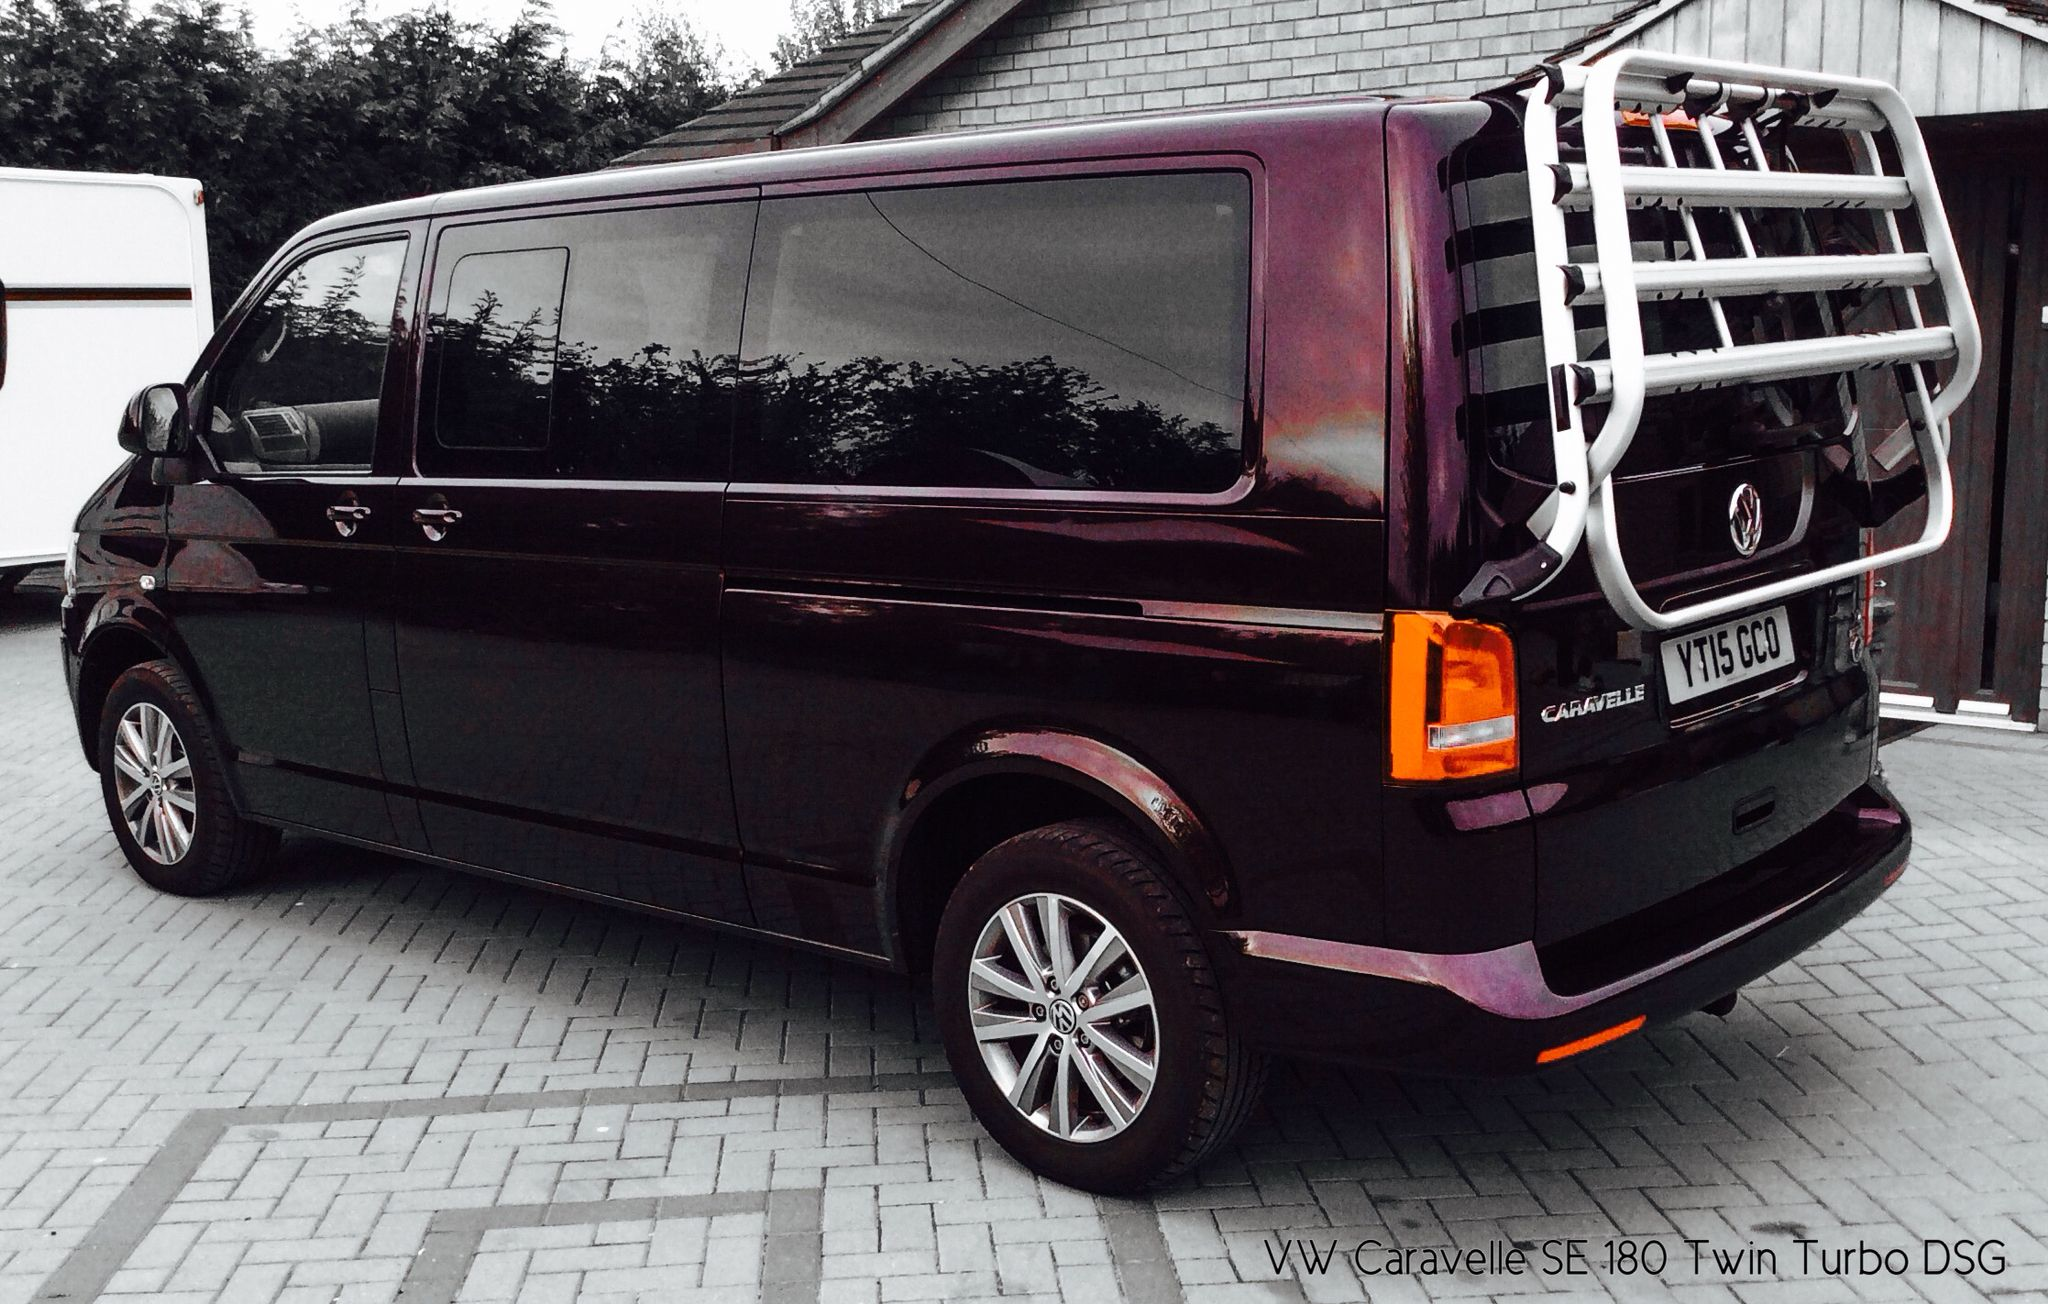 my 2015 vw caravelle longwheelbase 180 7 speed dsg in. Black Bedroom Furniture Sets. Home Design Ideas